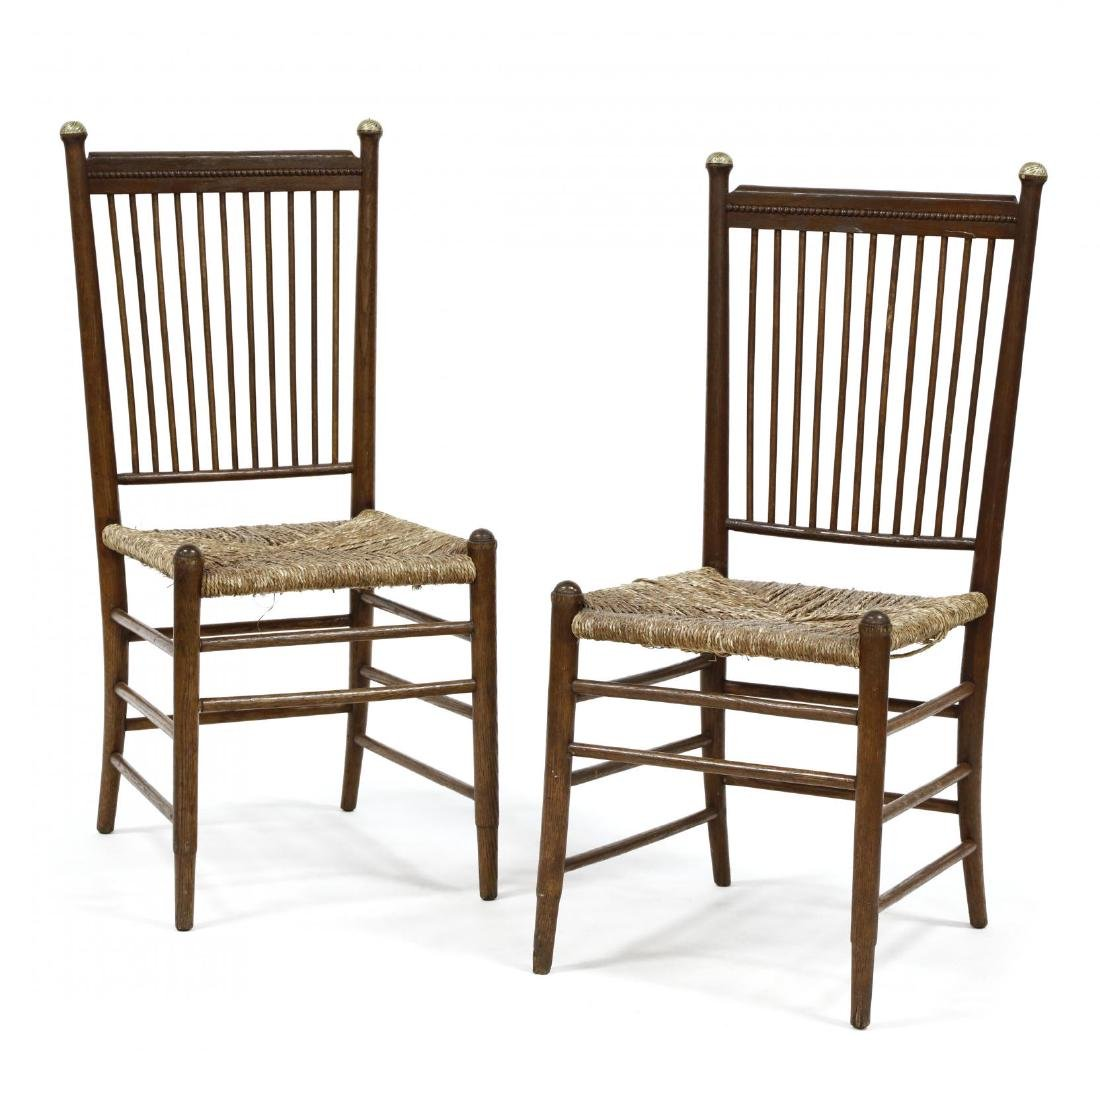 Pair of Antique Oak Spindle Back Chairs